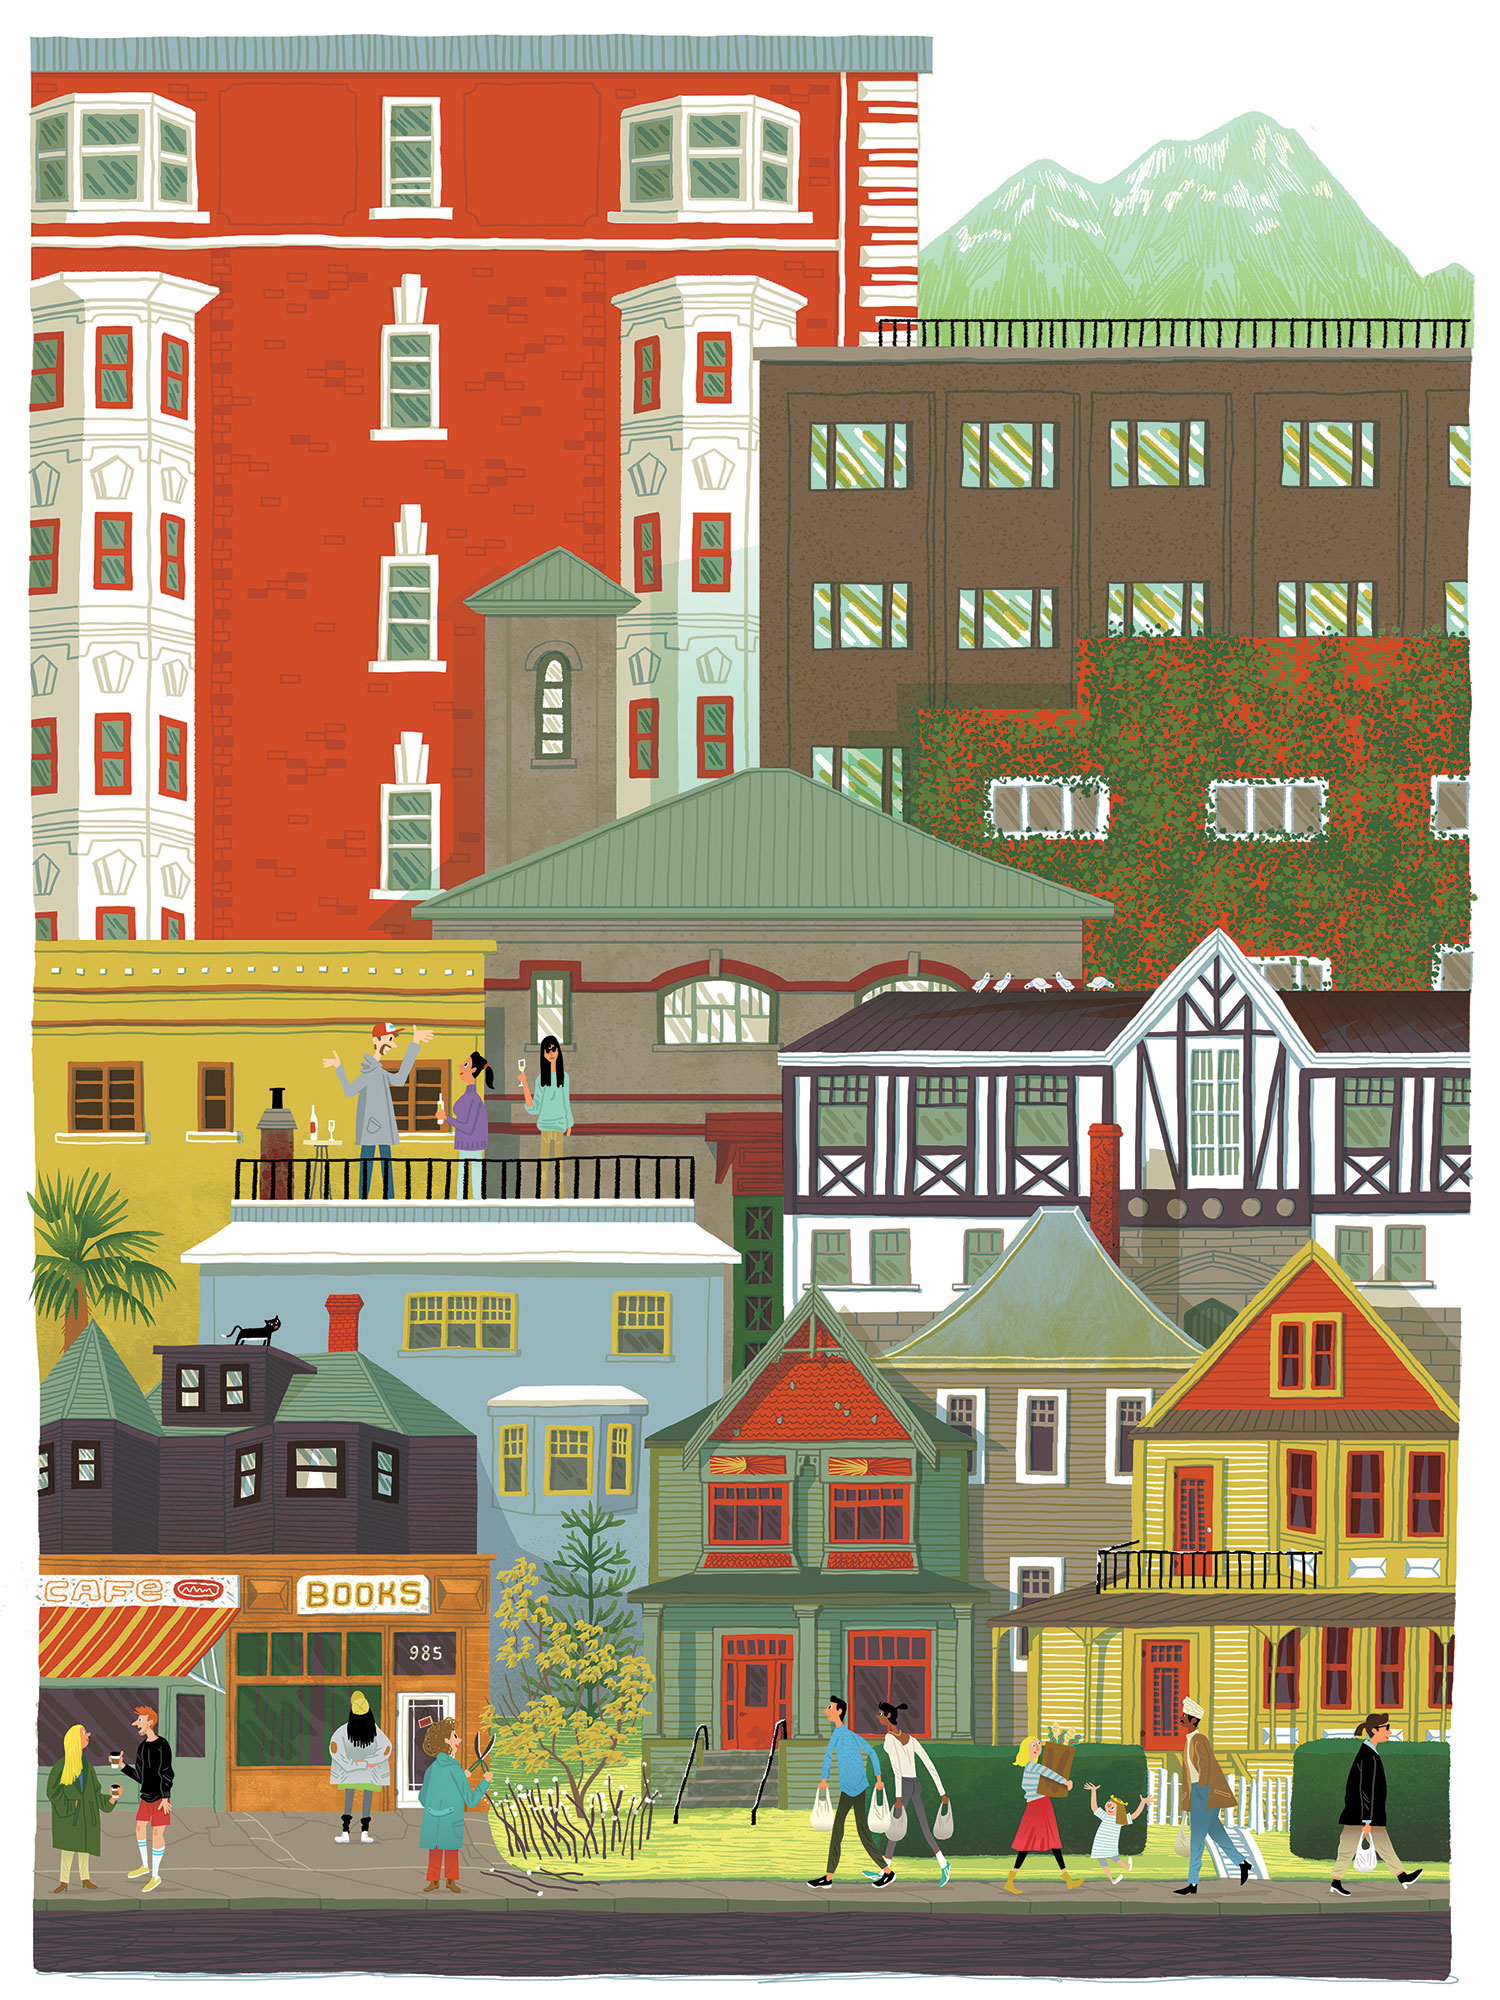 The West End neighbourhood in Vancouver, BC.  Digital illustration.